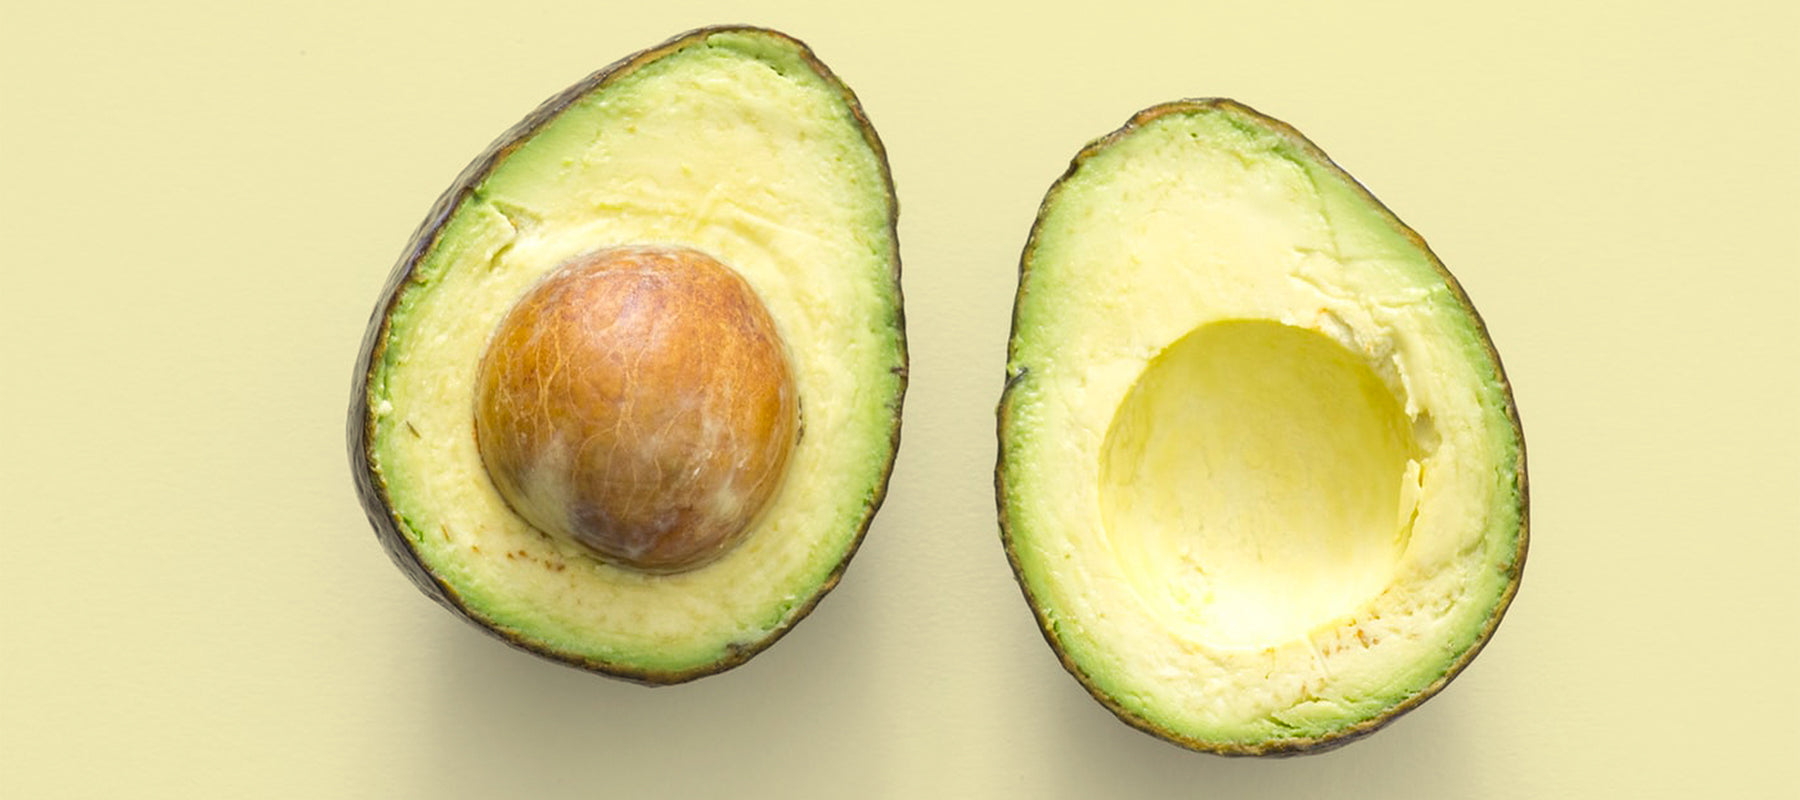 Image of an avocado sliced in two.